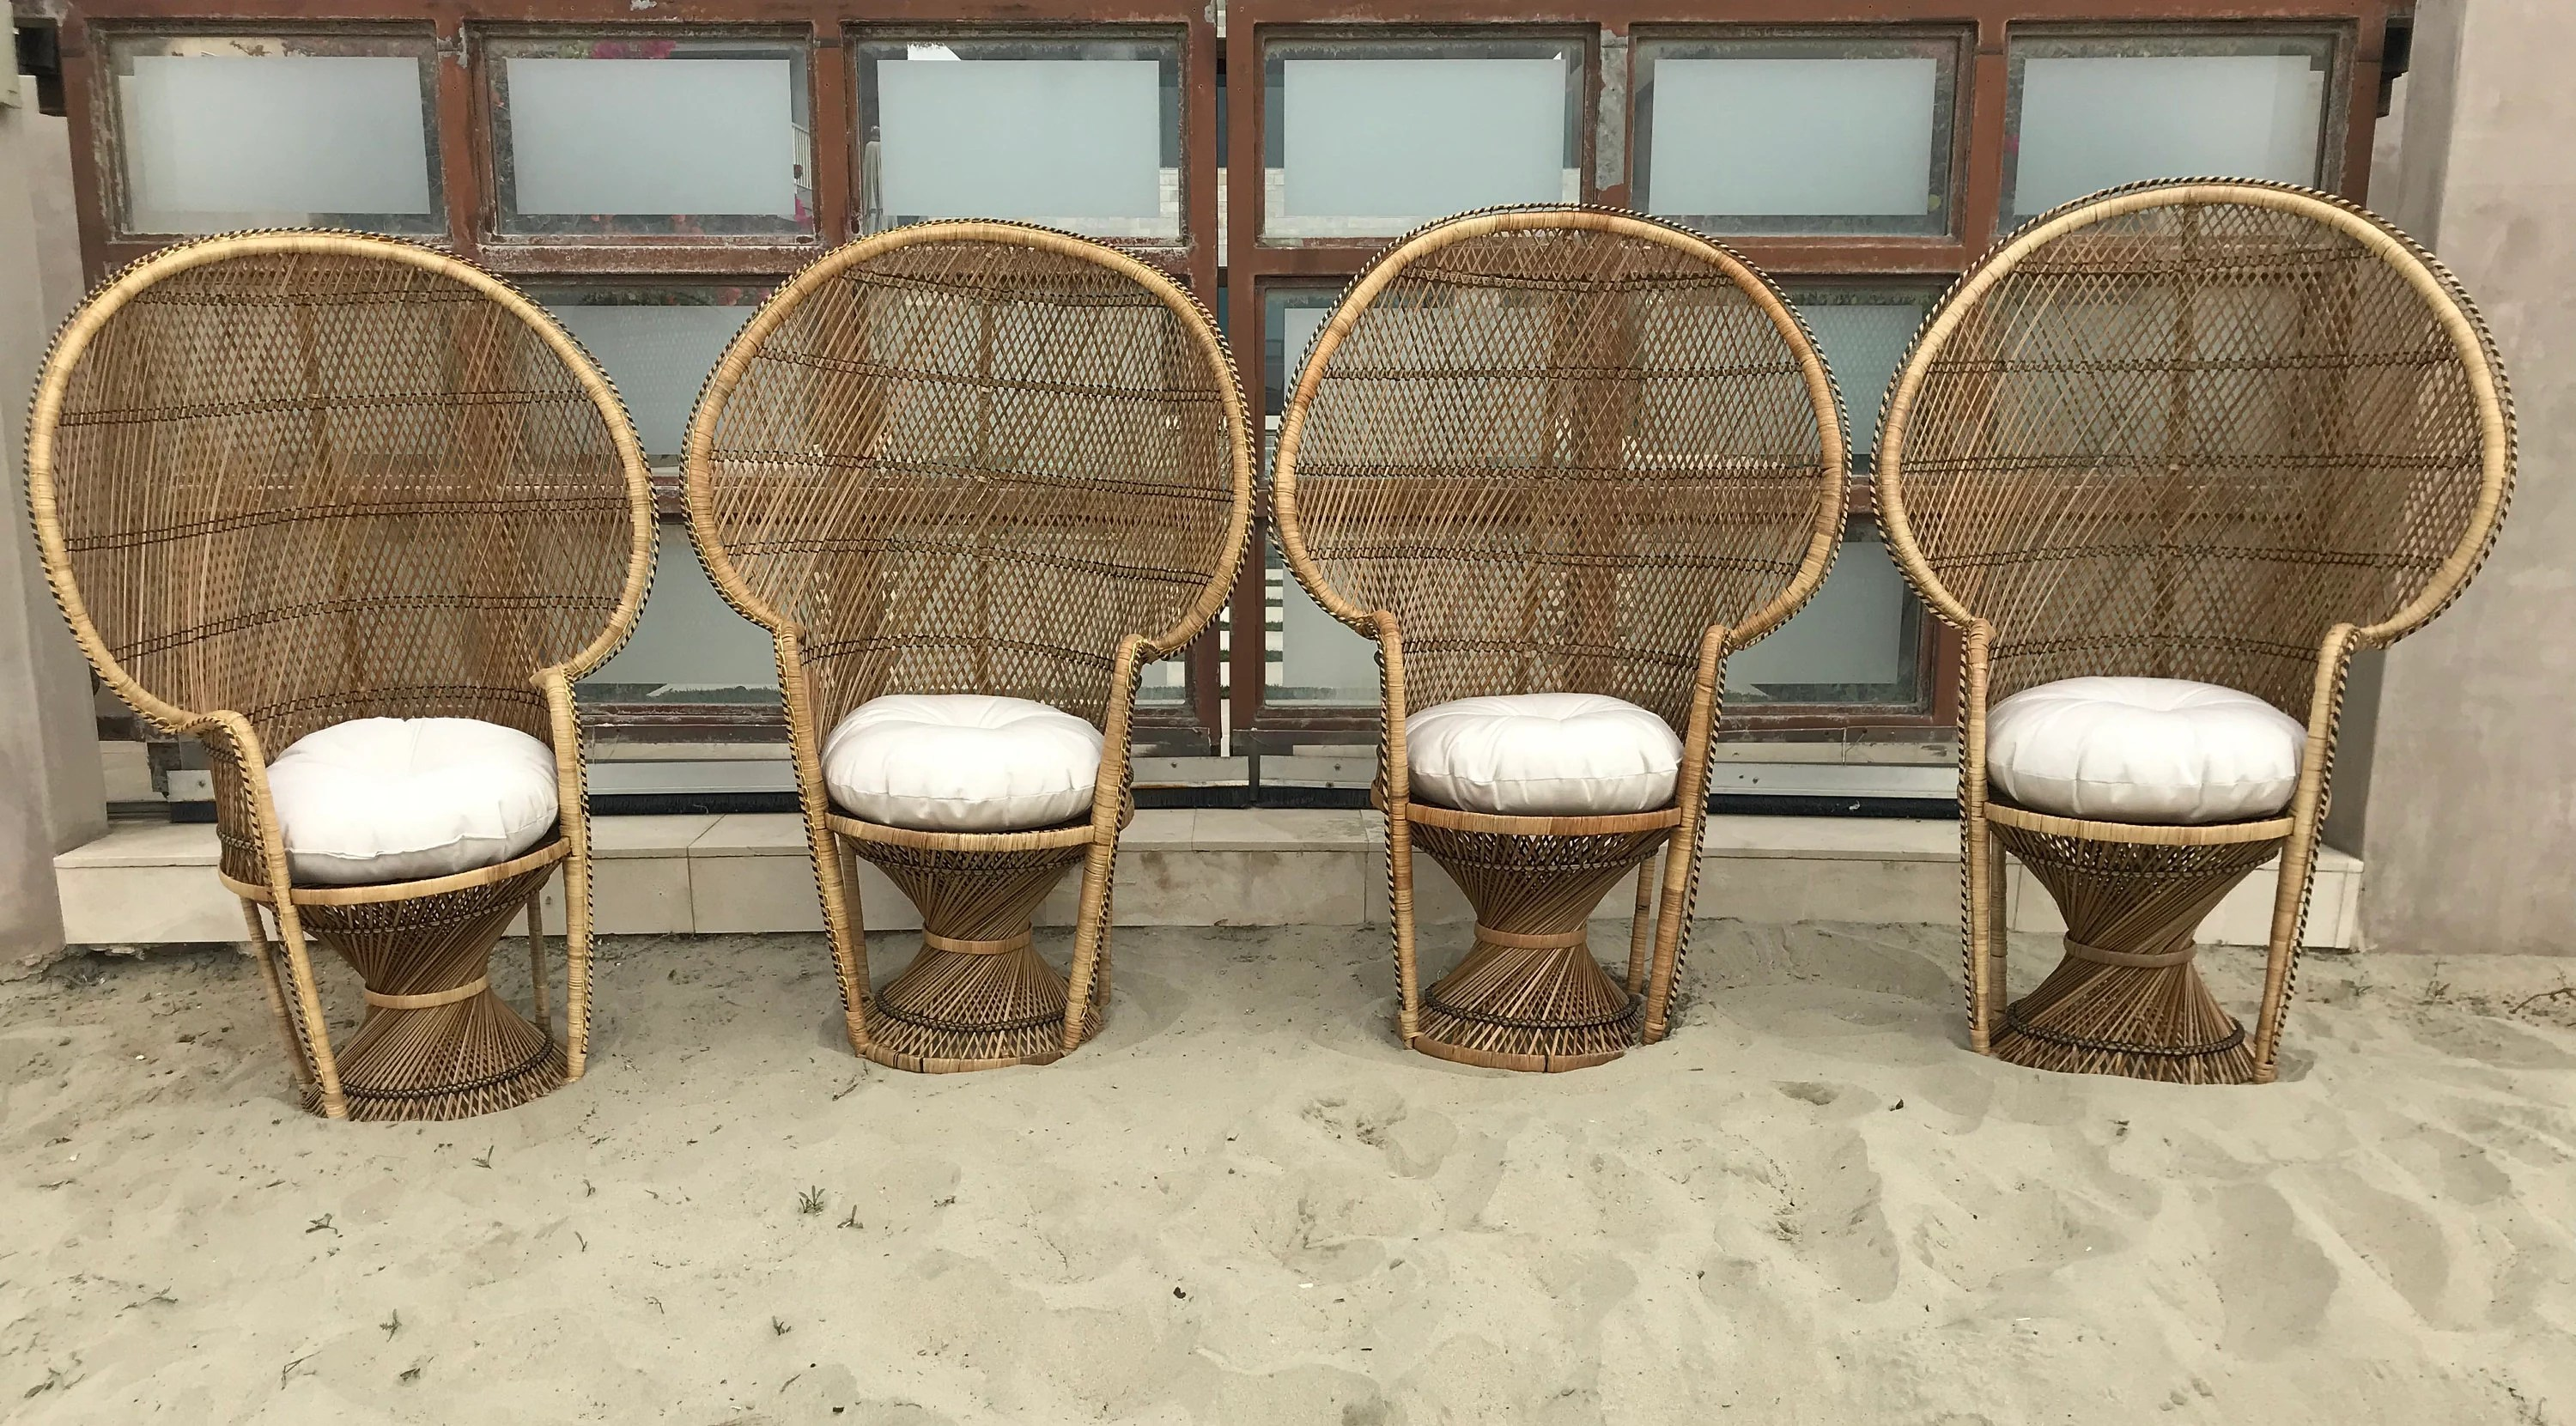 where to buy wicker chairs red velvet desk chair rattan etsy peacock emmanuelle bohemian boho chic fan armchair chippendale chinoiserie bamboo miami mid century bentwood